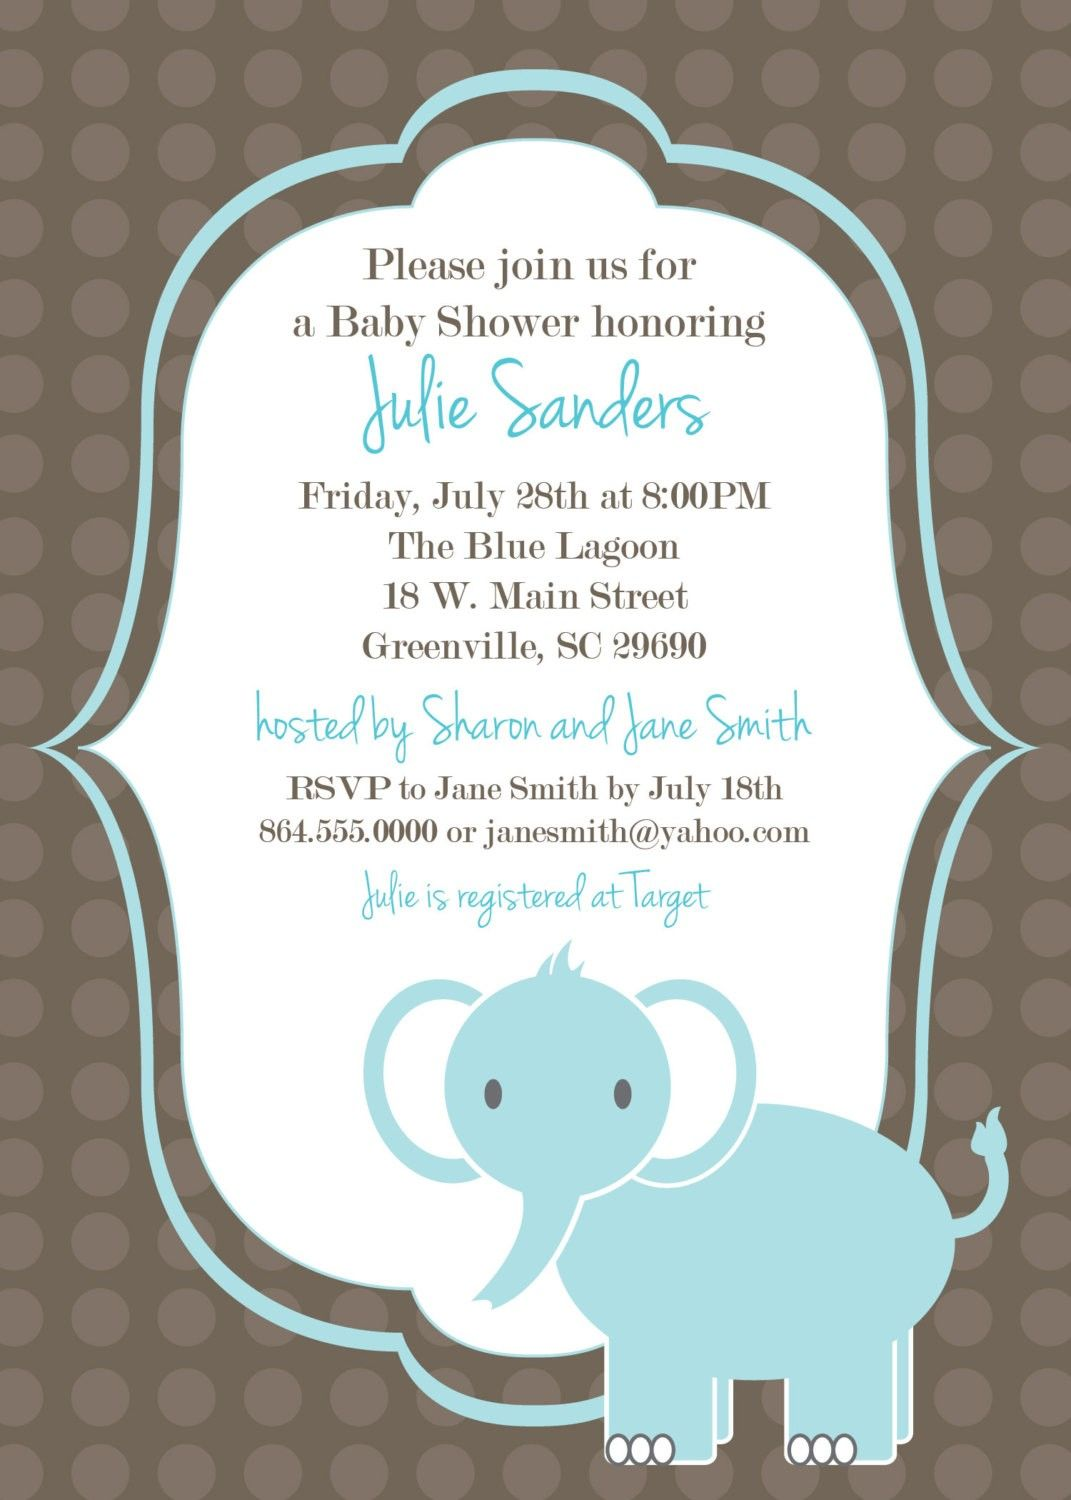 Baby Shower Invitations for Boys | Baby shower invitations ...